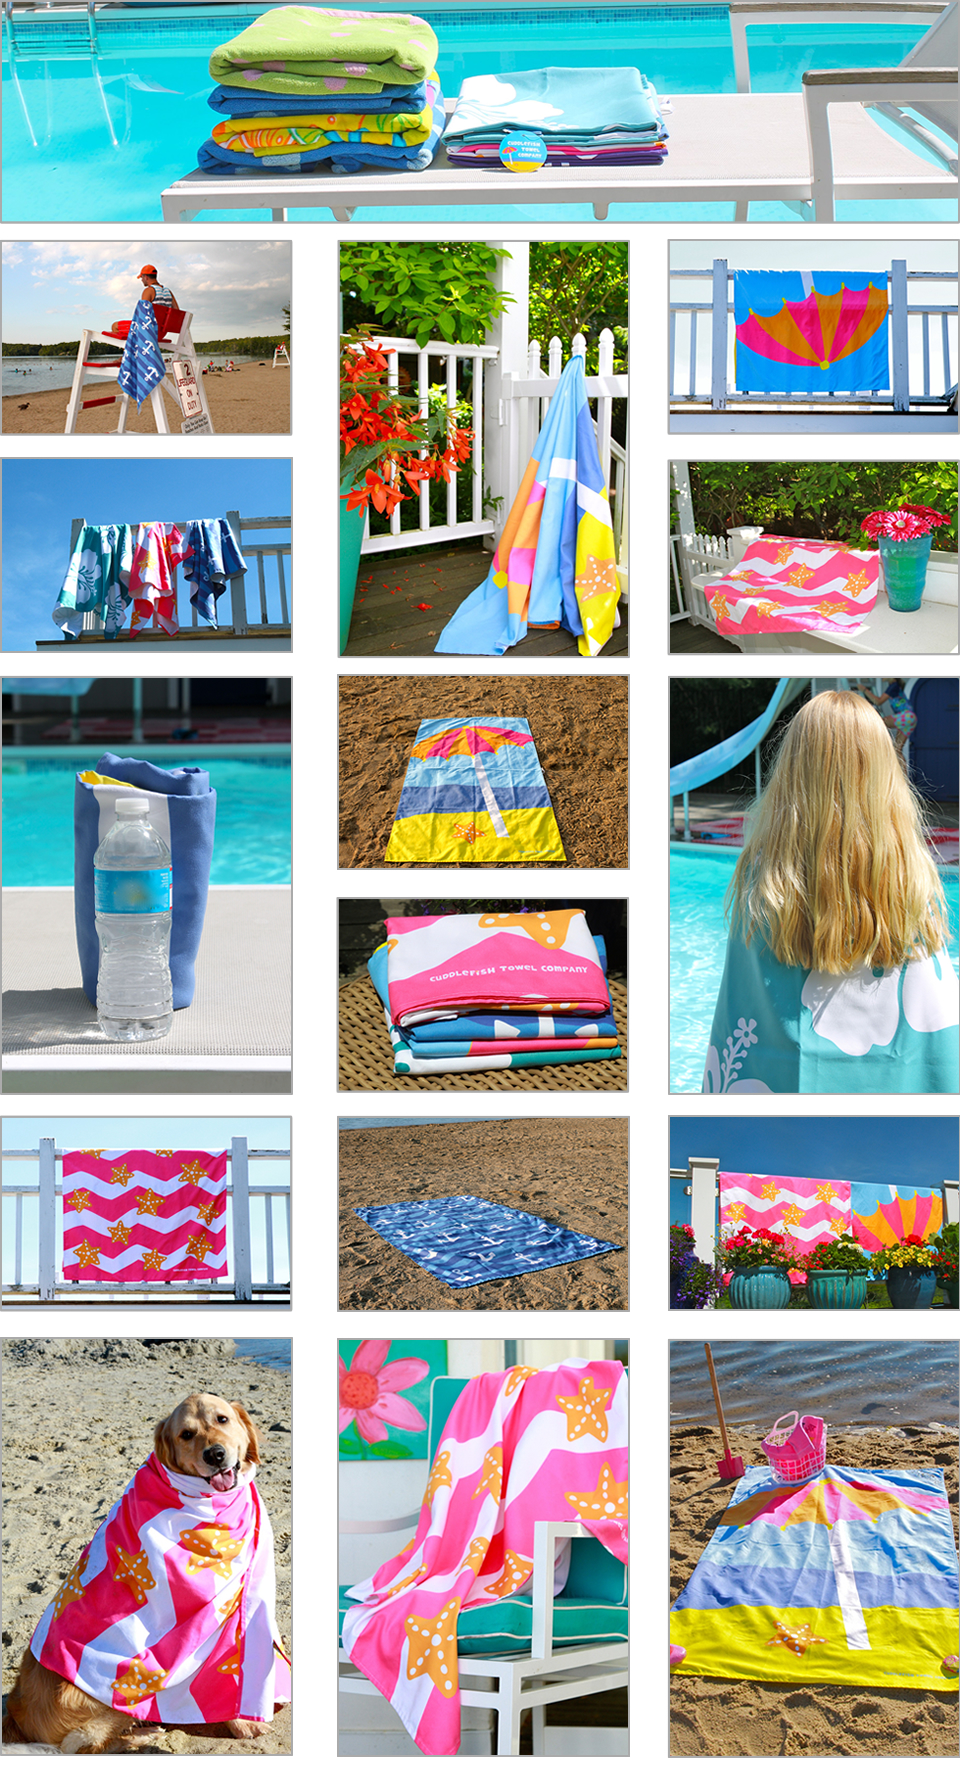 images of towels